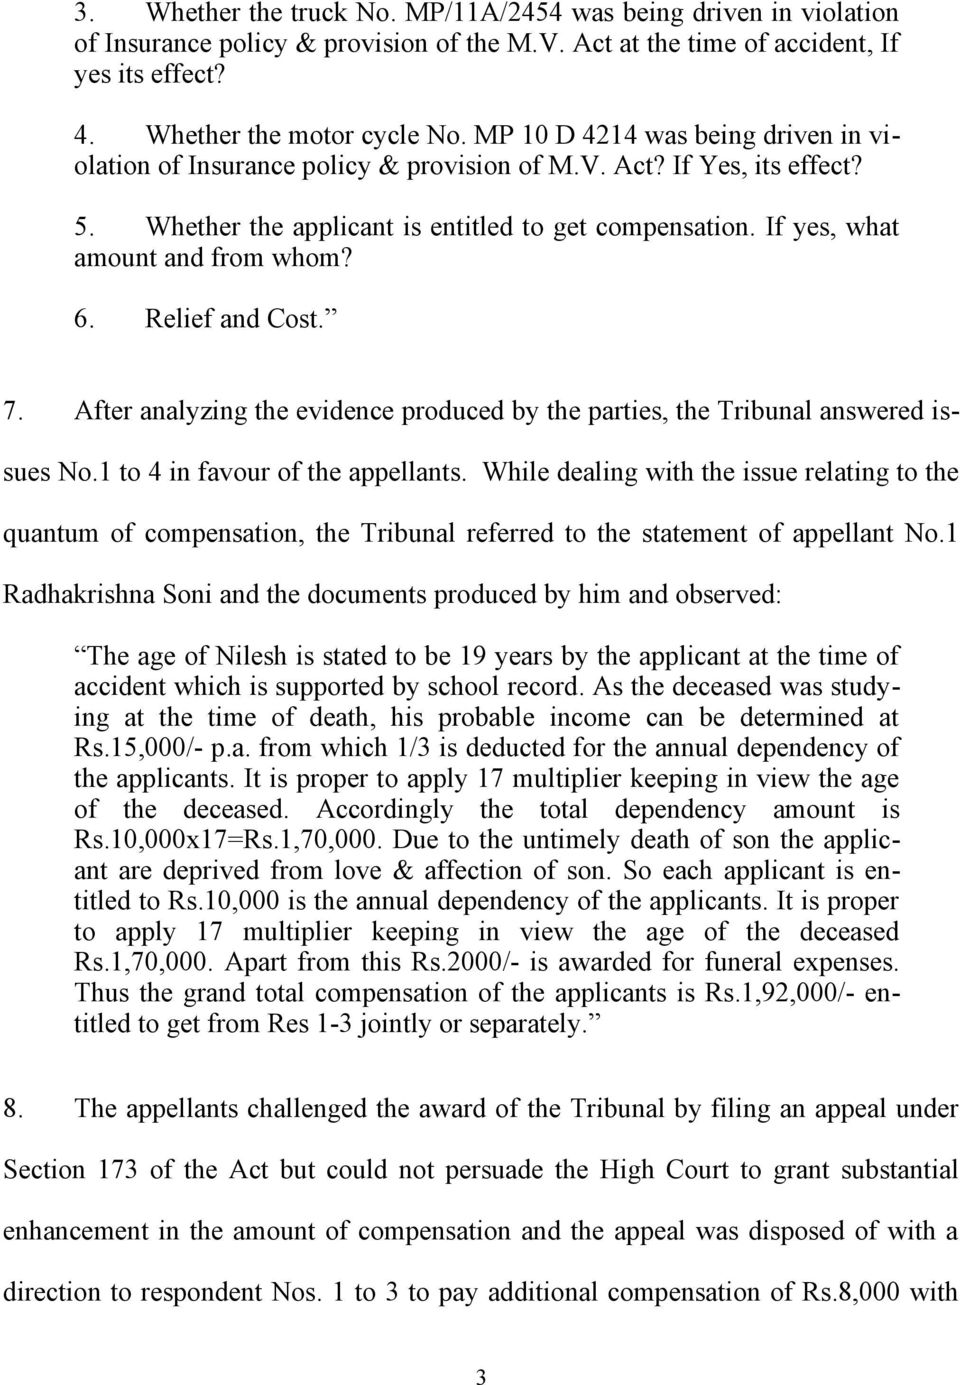 6. Relief and Cost. 7. After analyzing the evidence produced by the parties, the Tribunal answered issues No.1 to 4 in favour of the appellants.